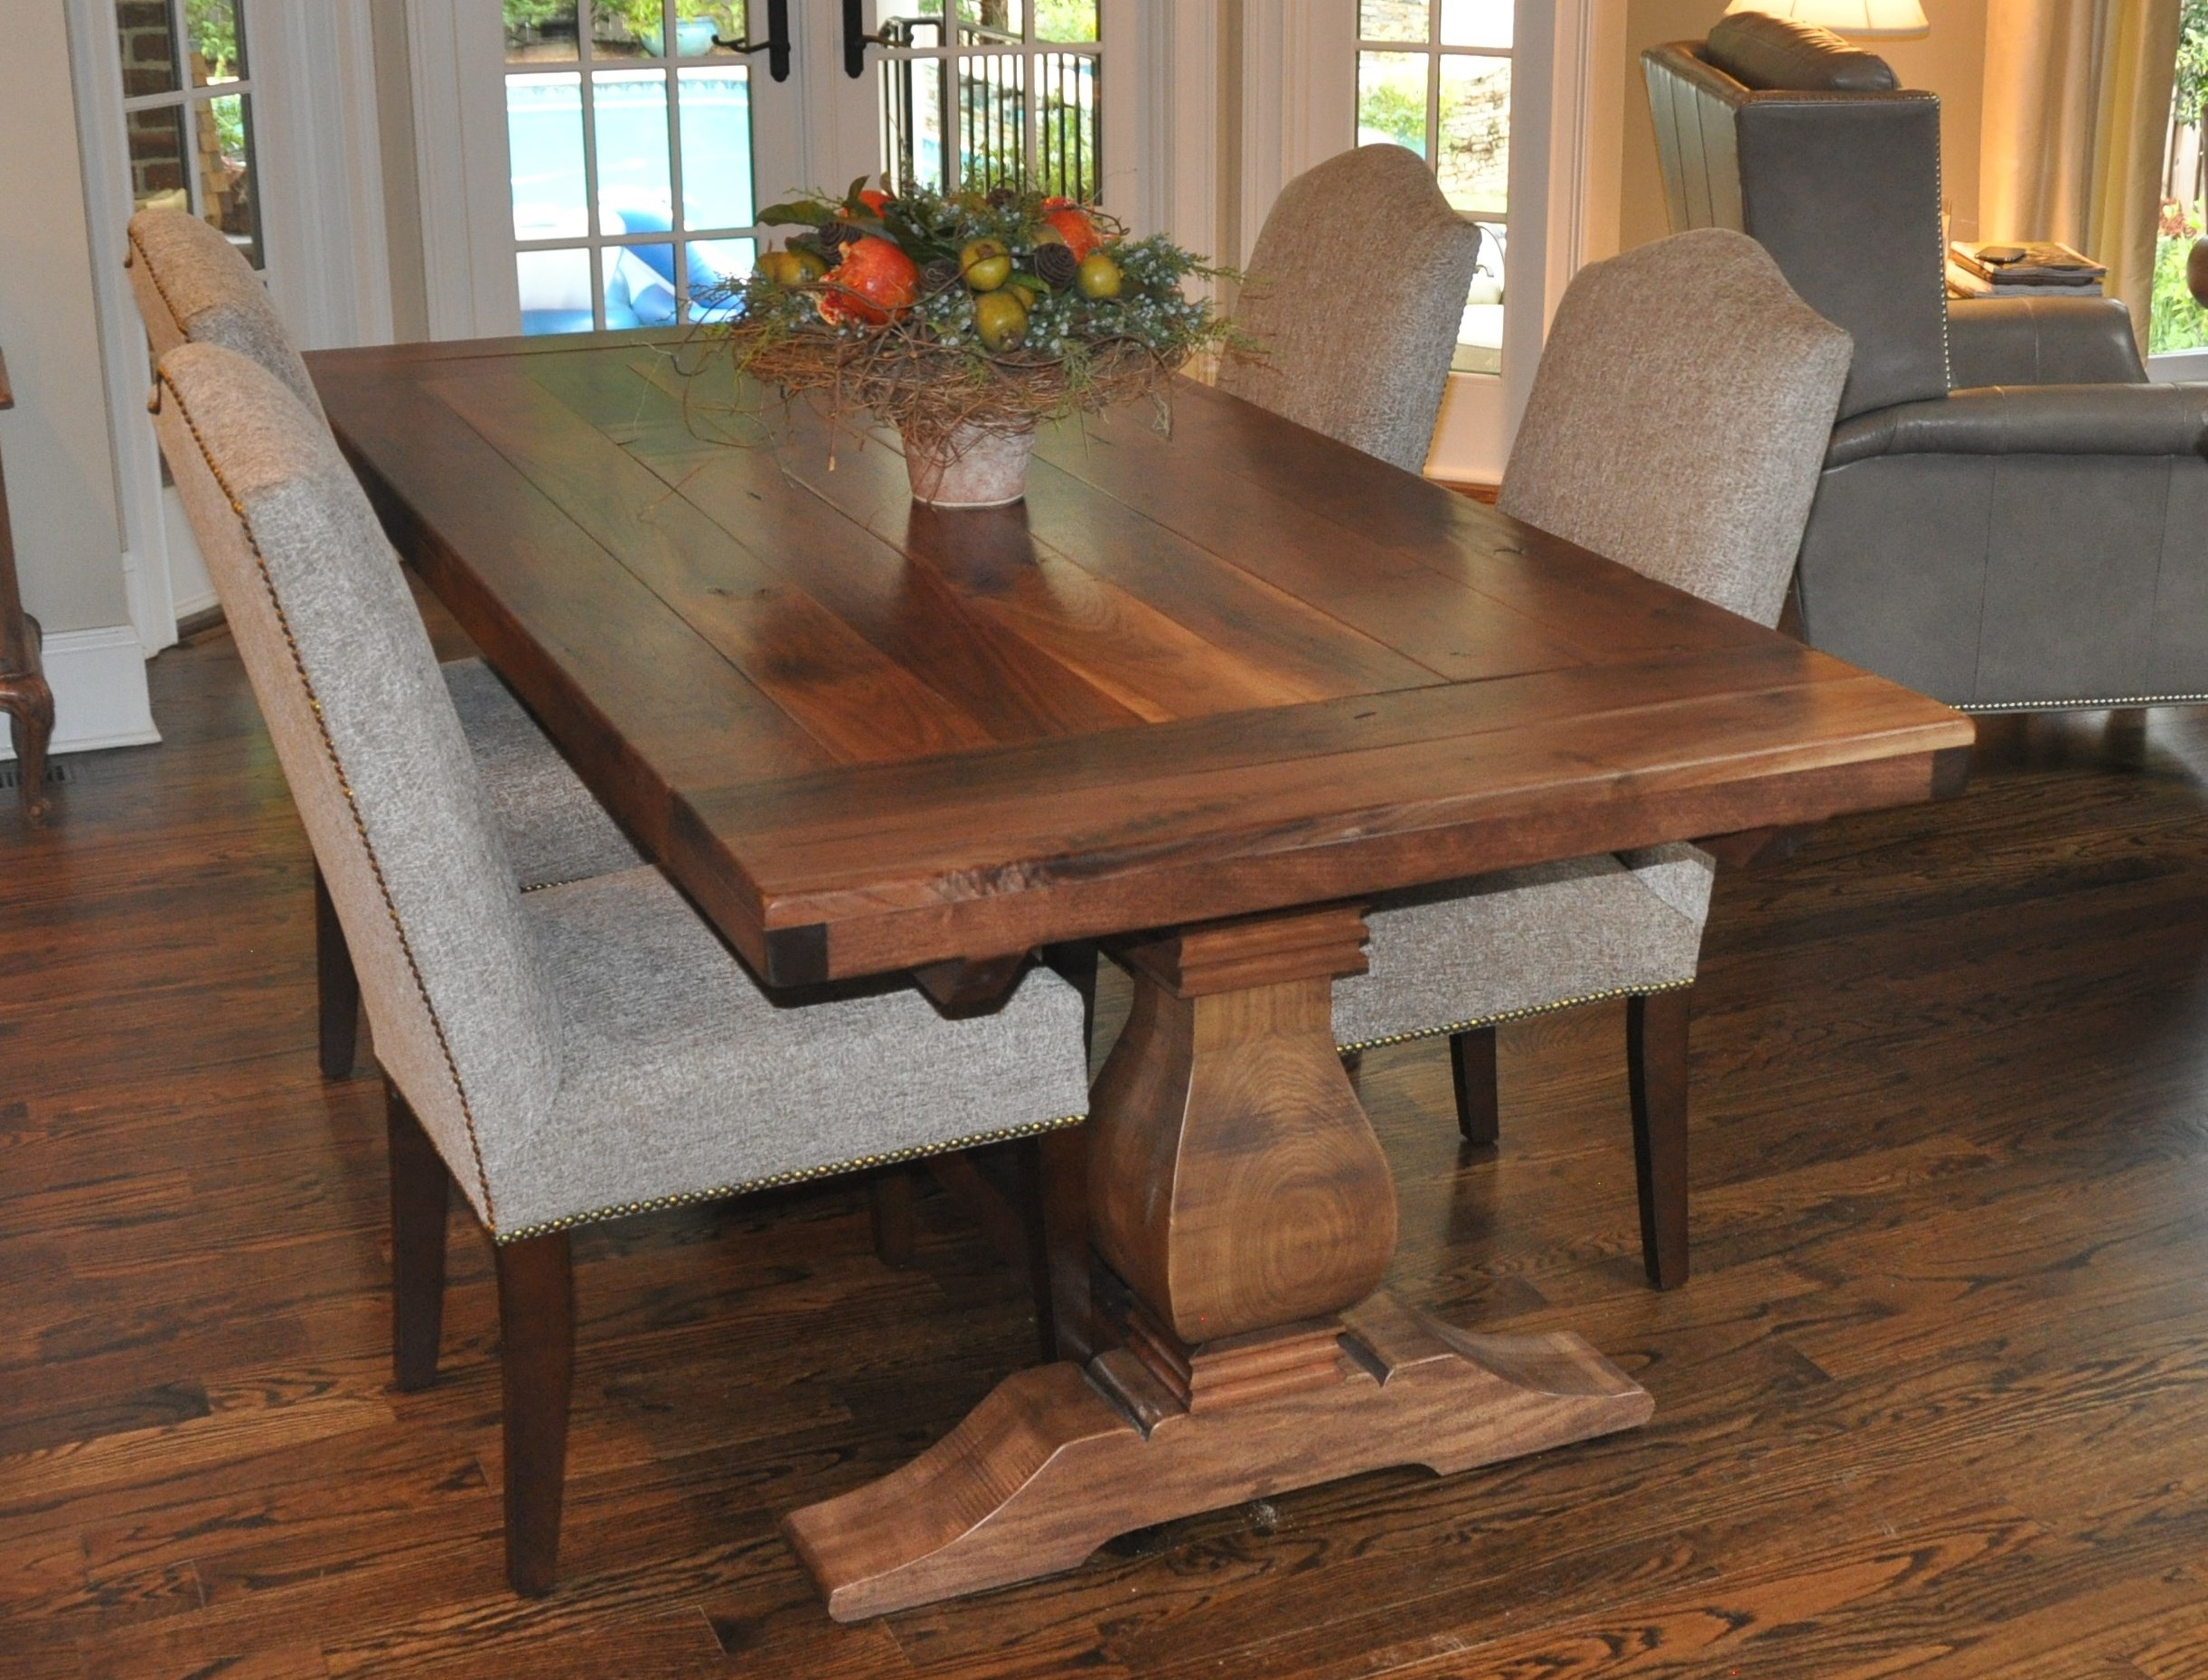 Rustic weston trestle farmhouse table atlanta ga denver Farm dining table